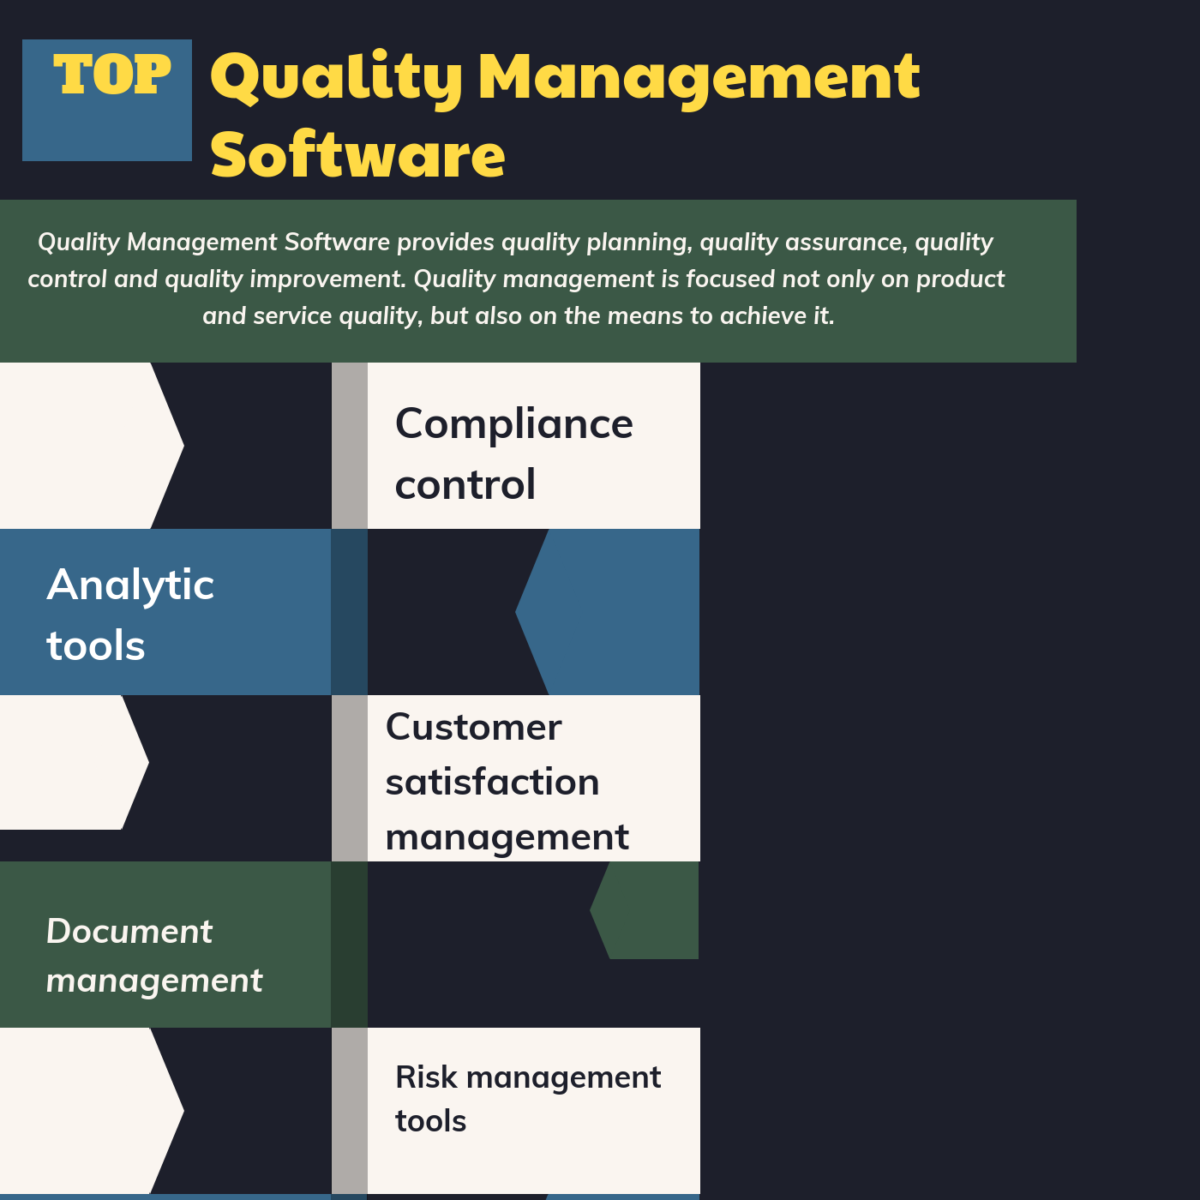 Top 17 Quality Management Software In 2020 Reviews Features Pricing Comparison Pat Research B2b Reviews Buying Guides Best Practices Risk Management Management Software